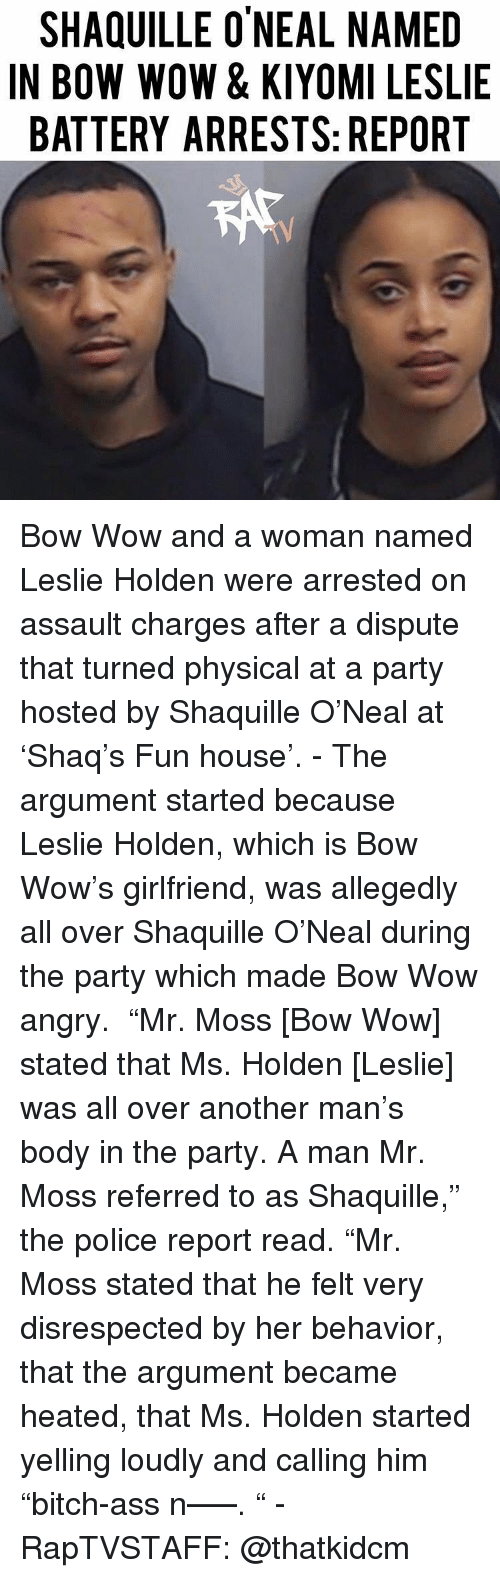 """Ass, Memes, and Party: SHAQUILLE O'NEAL NAMED  IN BOW WOW & KIYOMI LESLIE  BATTERY ARRESTS: REPORT Bow Wow and a woman named Leslie Holden were arrested on assault charges after a dispute that turned physical at a party hosted by Shaquille O'Neal at 'Shaq's Fun house'. - The argument started because Leslie Holden, which is Bow Wow's girlfriend, was allegedly all over Shaquille O'Neal during the party which made Bow Wow angry.  """"Mr. Moss [Bow Wow] stated that Ms. Holden [Leslie] was all over another man's body in the party. A man Mr. Moss referred to as Shaquille,"""" the police report read. """"Mr. Moss stated that he felt very disrespected by her behavior, that the argument became heated, that Ms. Holden started yelling loudly and calling him """"bitch-ass n—–. """" - RapTVSTAFF: @thatkidcm"""